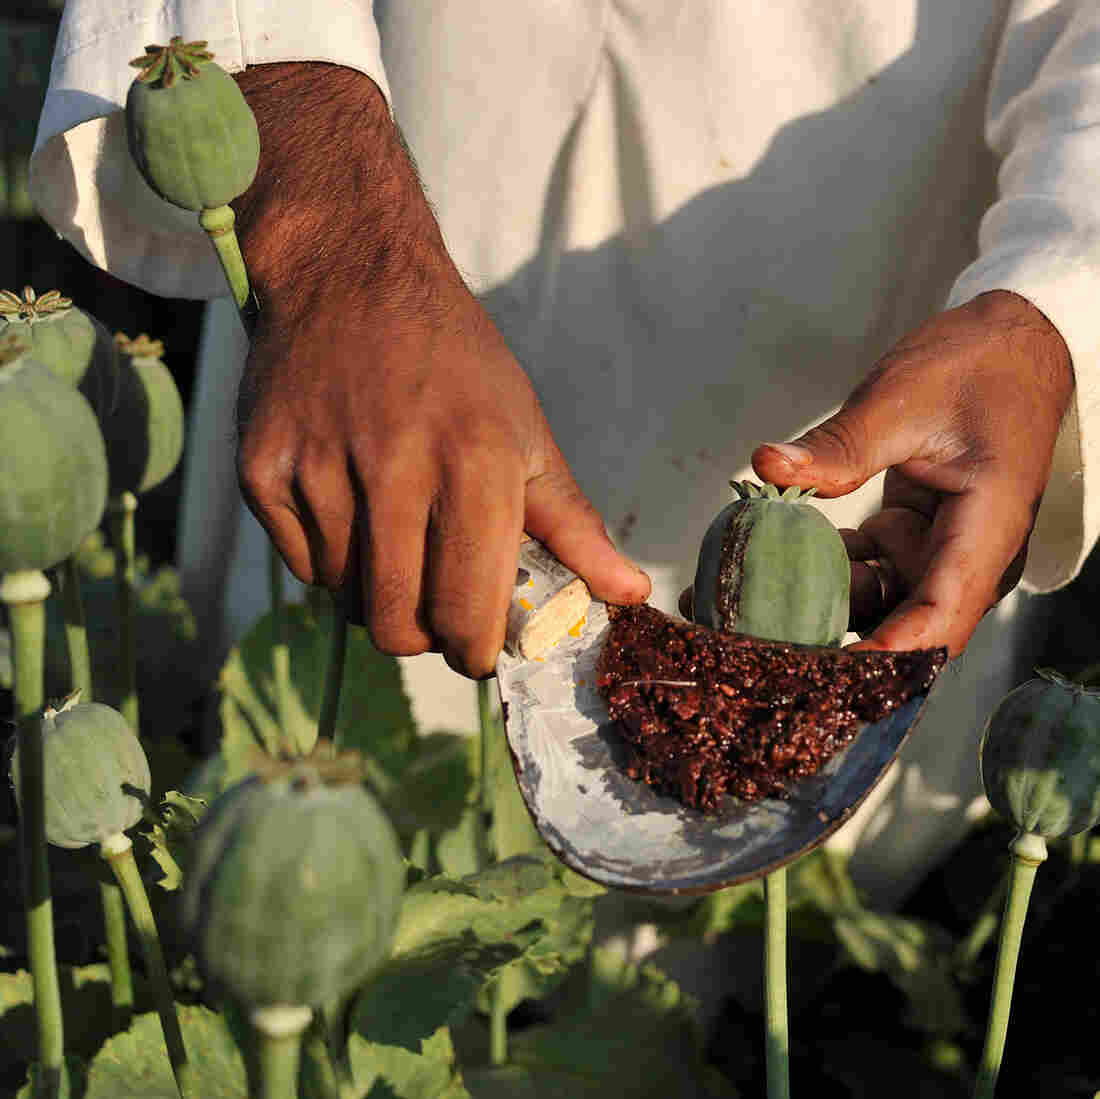 Afghan Farmers: Opium Is The Only Way To Make A Living